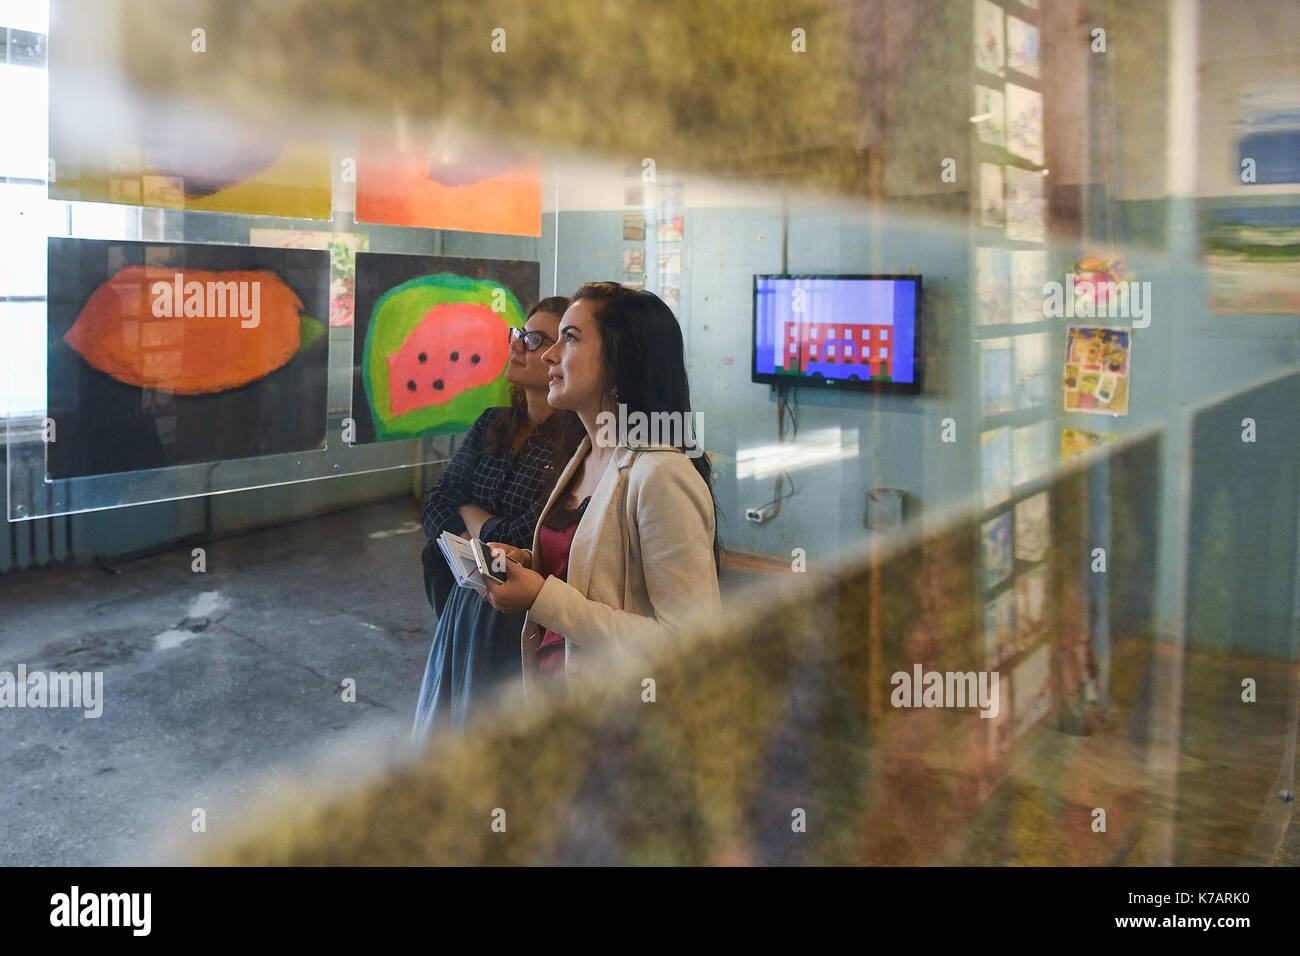 Yekaterinburg, Russia. 15th Sep, 2017. Visitors view showpieces on display at the 4th Ural Industrial Biennale: New Literacy exhibition of contemporary art in the building of the former Ural instrument-making plant. Credit: Donat Sorokin/TASS/Alamy Live News - Stock Image